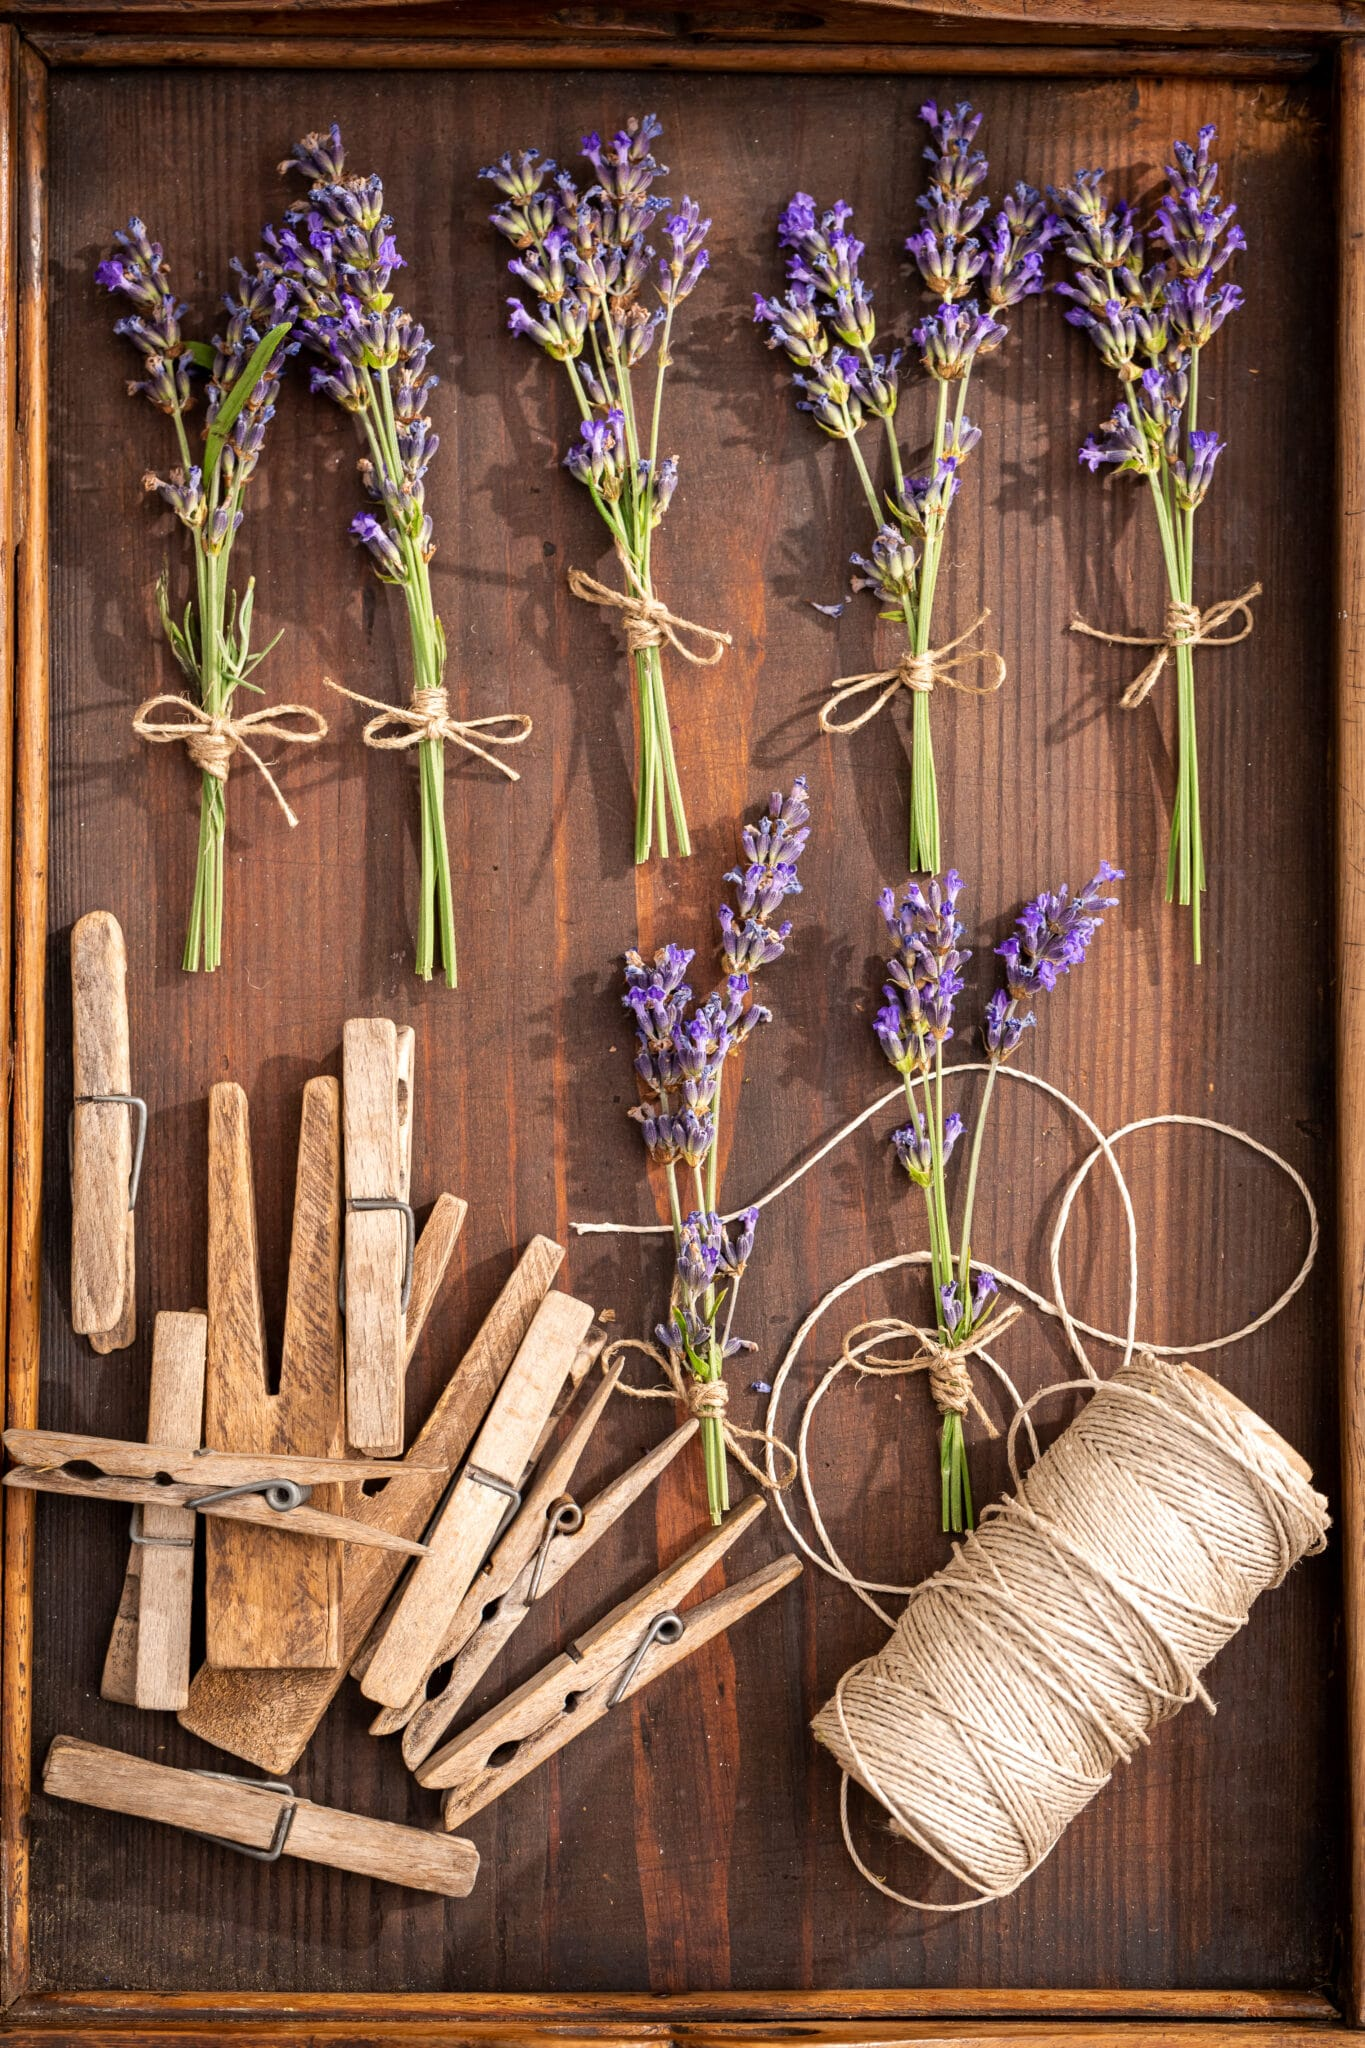 A tray filled with small sisal rope tied bundles of lavender ready to dry.